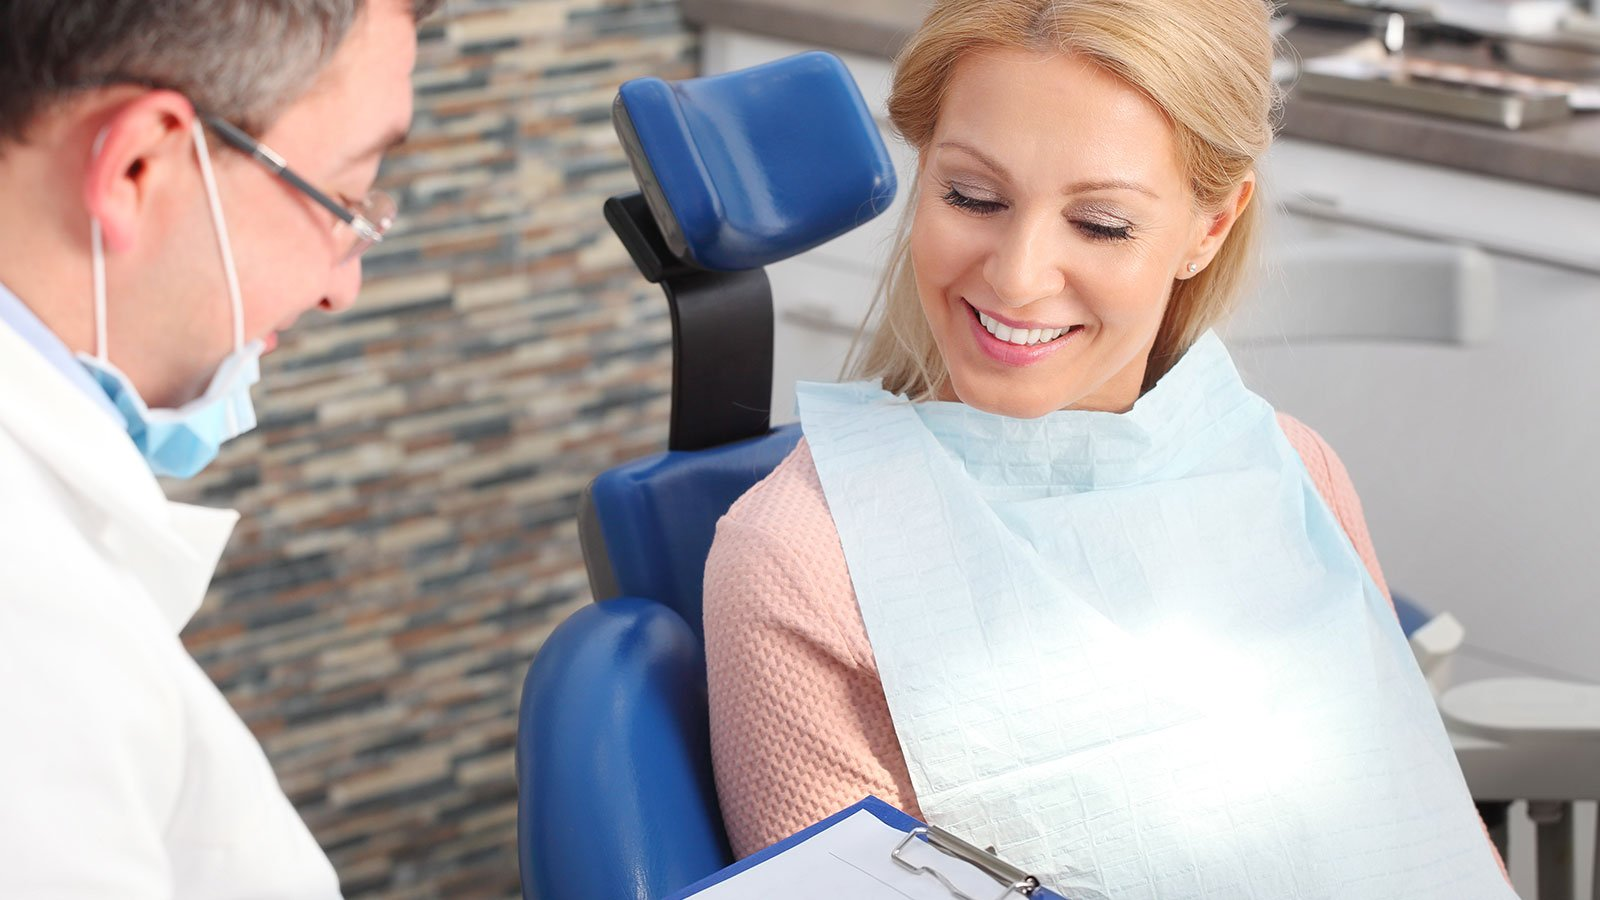 a smiling woman next to a dentist